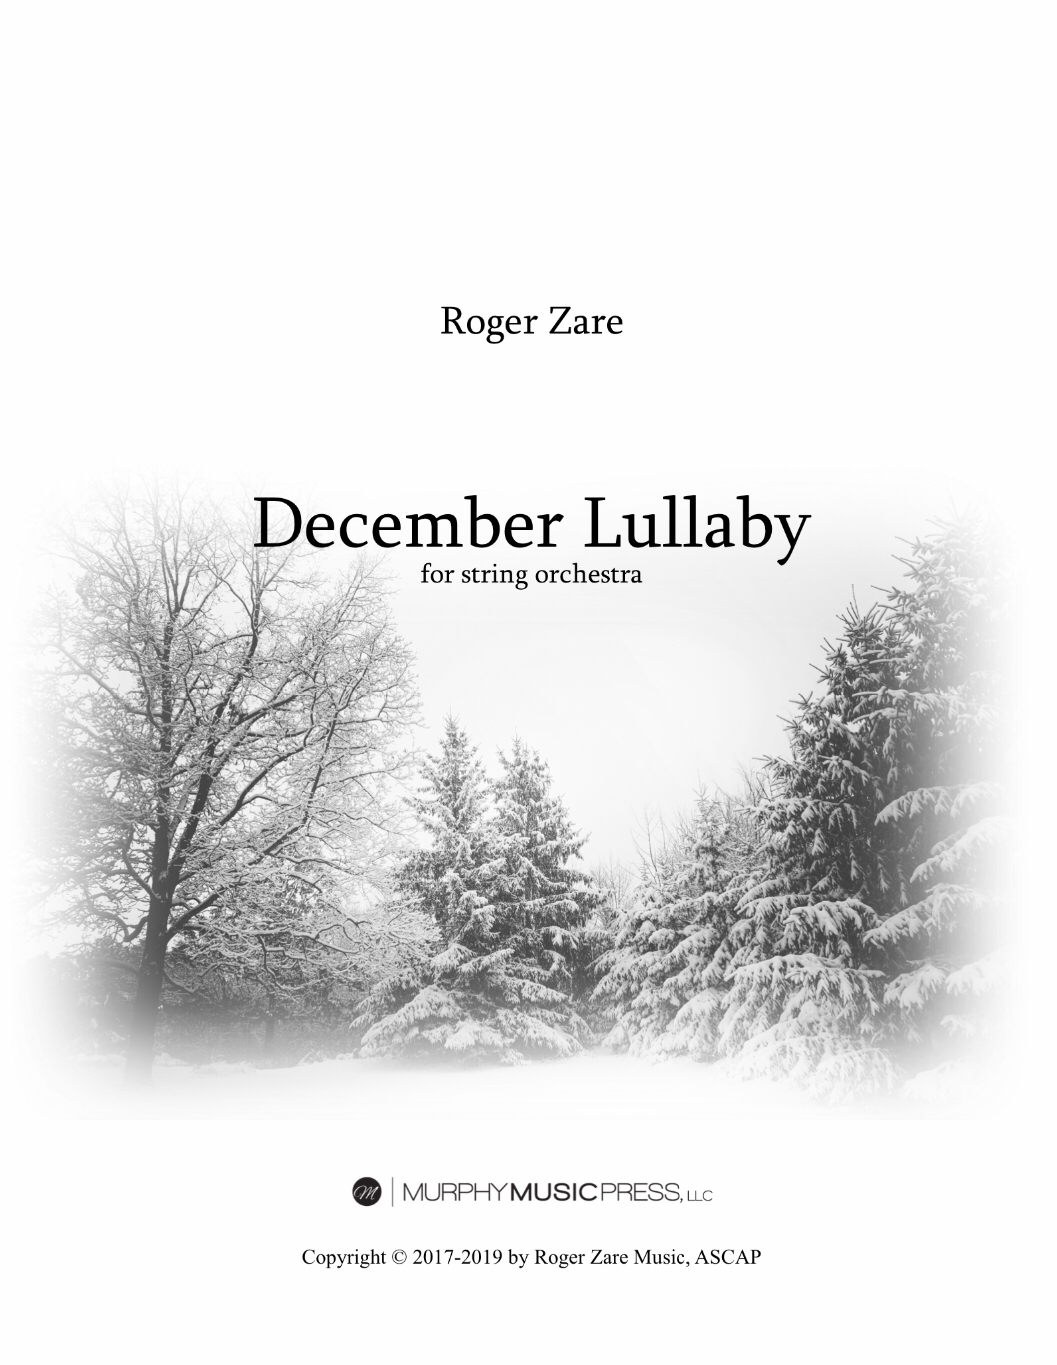 December Lullaby (String Orchestra Version)  by Roger Zare